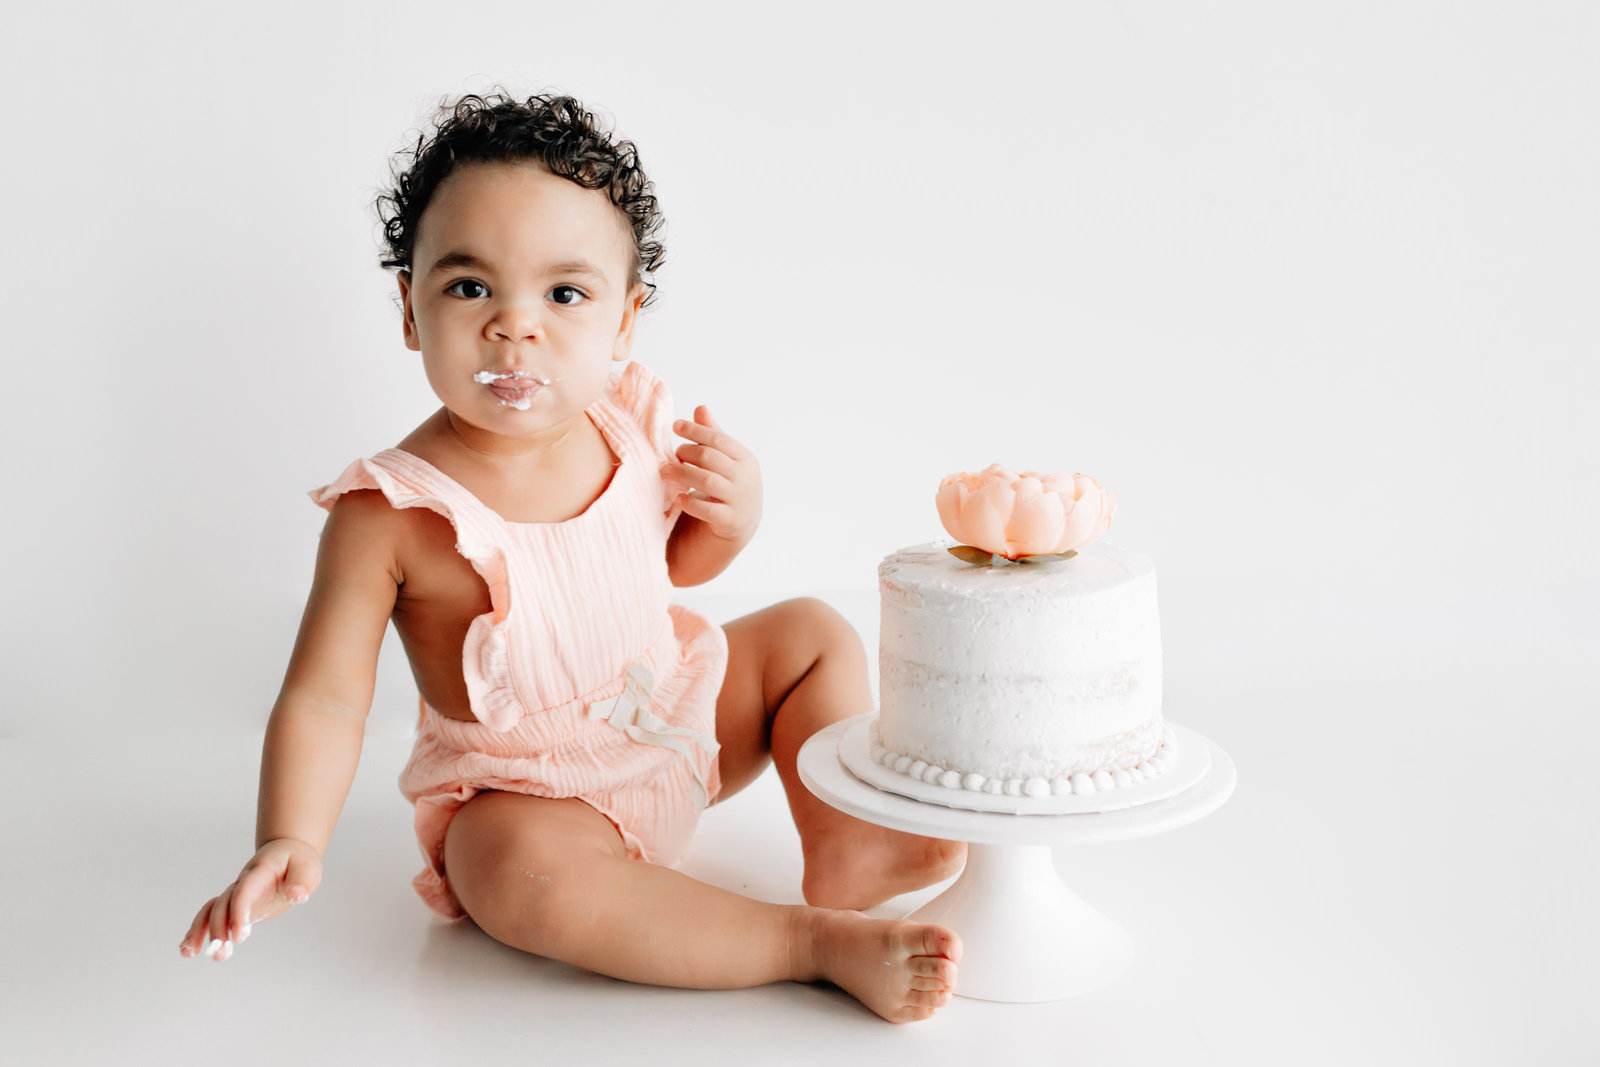 St_Louis_Cake_Smash_Photographer_Kelly_Laramore_Photography65